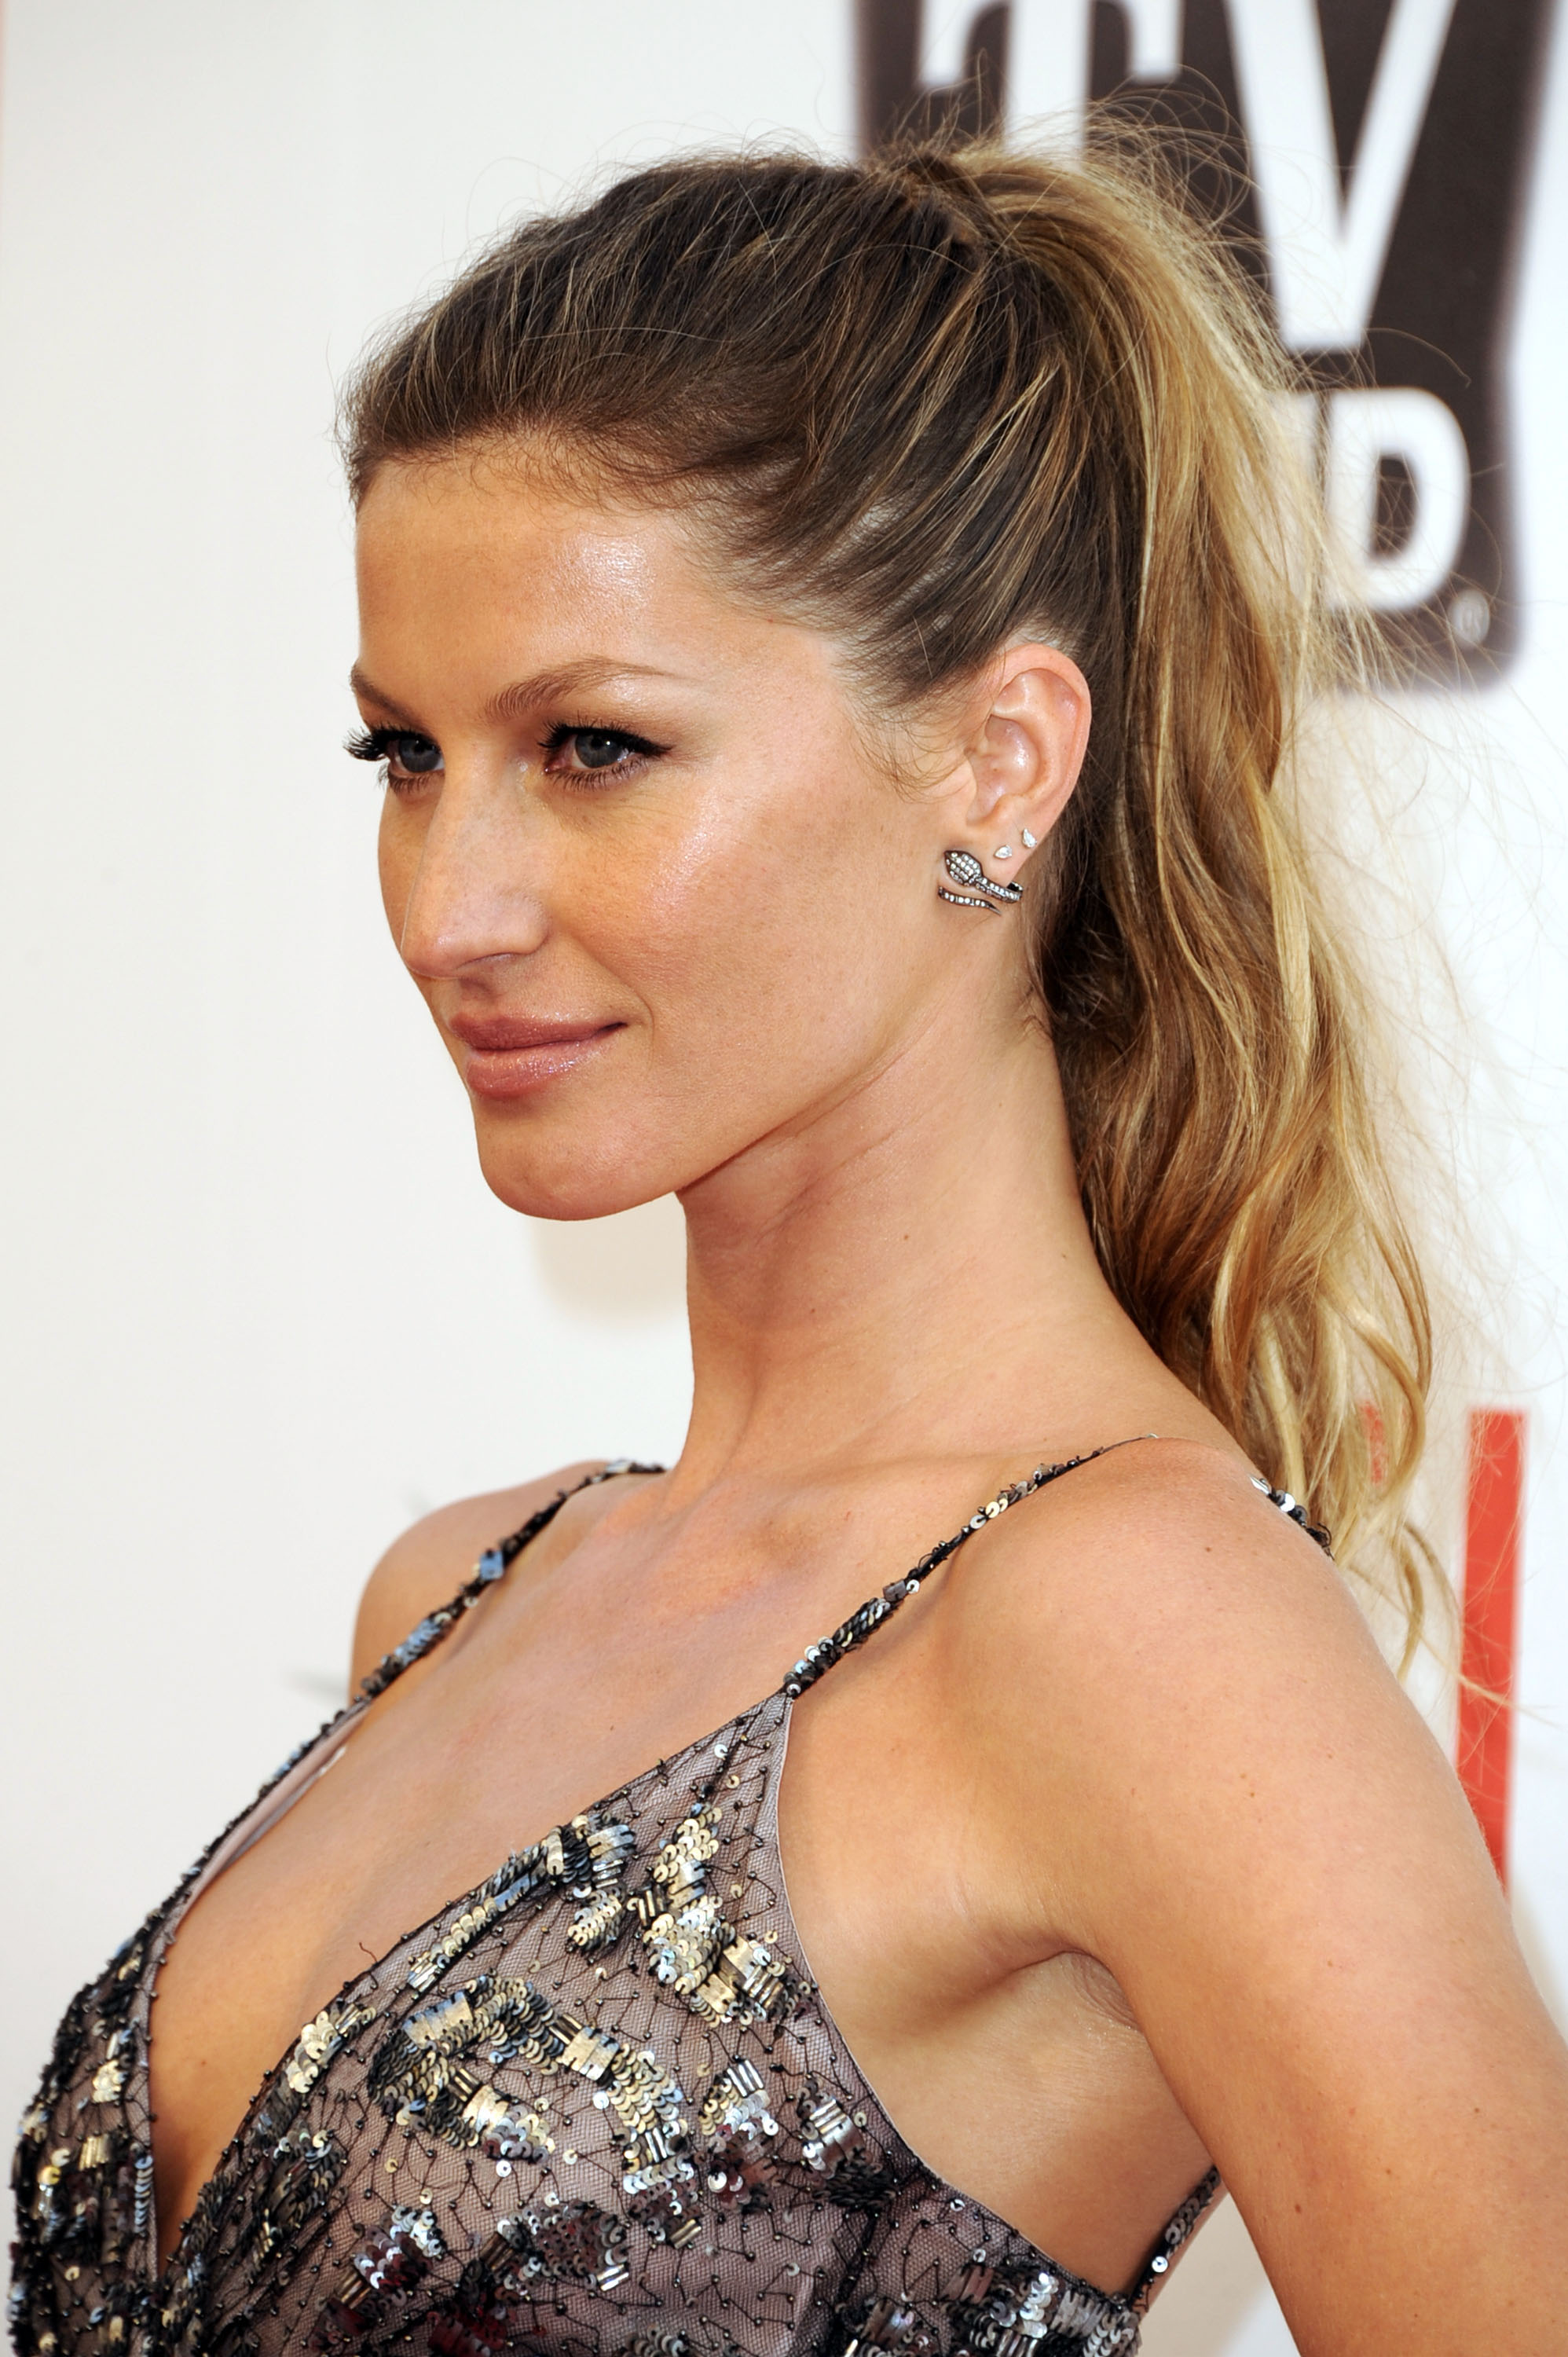 Model Gisele Bundchen arrives at AFI's 39th Annual Achievement Award Honoring Morgan Freeman at Sony Pictures Studios on June 9, 2011 in Culver City, California. AFI's 39th Annual Achievement Award Honoring Morgan Freeman - Arrivals Sony Pictures Studios Culver City, CA United States June 9, 2011 Photo by Steve Granitz/WireImage.com To license this image (65094518), contact WireImage.com